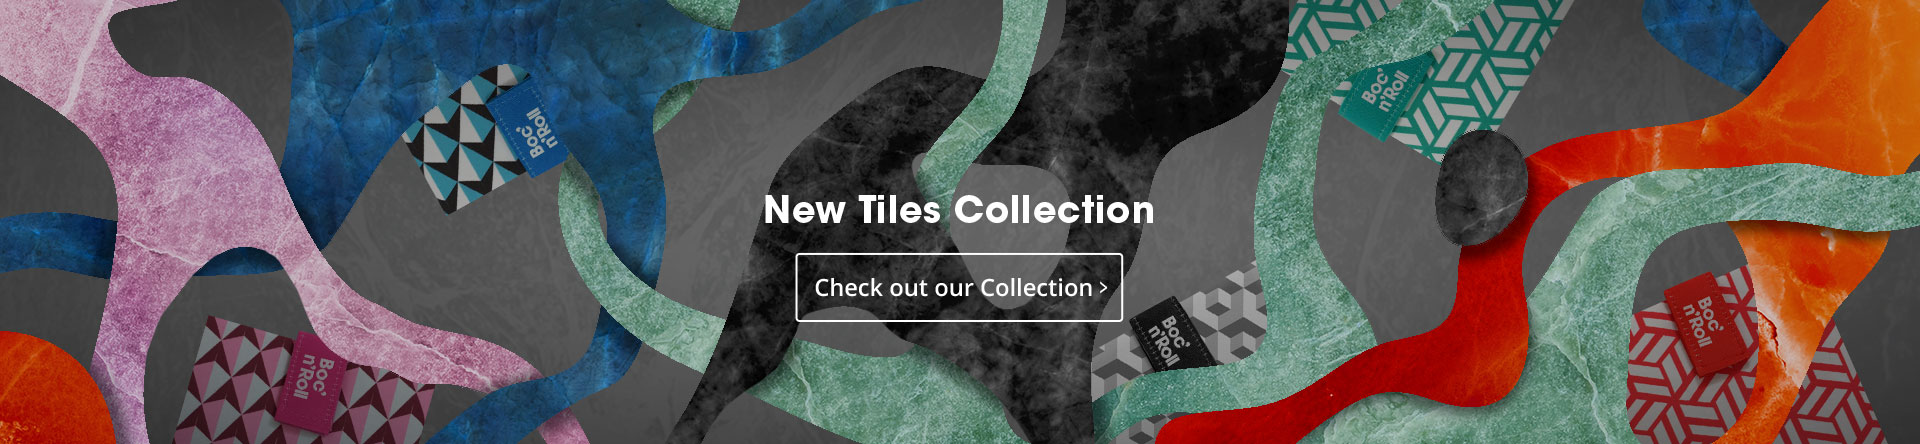 New Tiles Collection